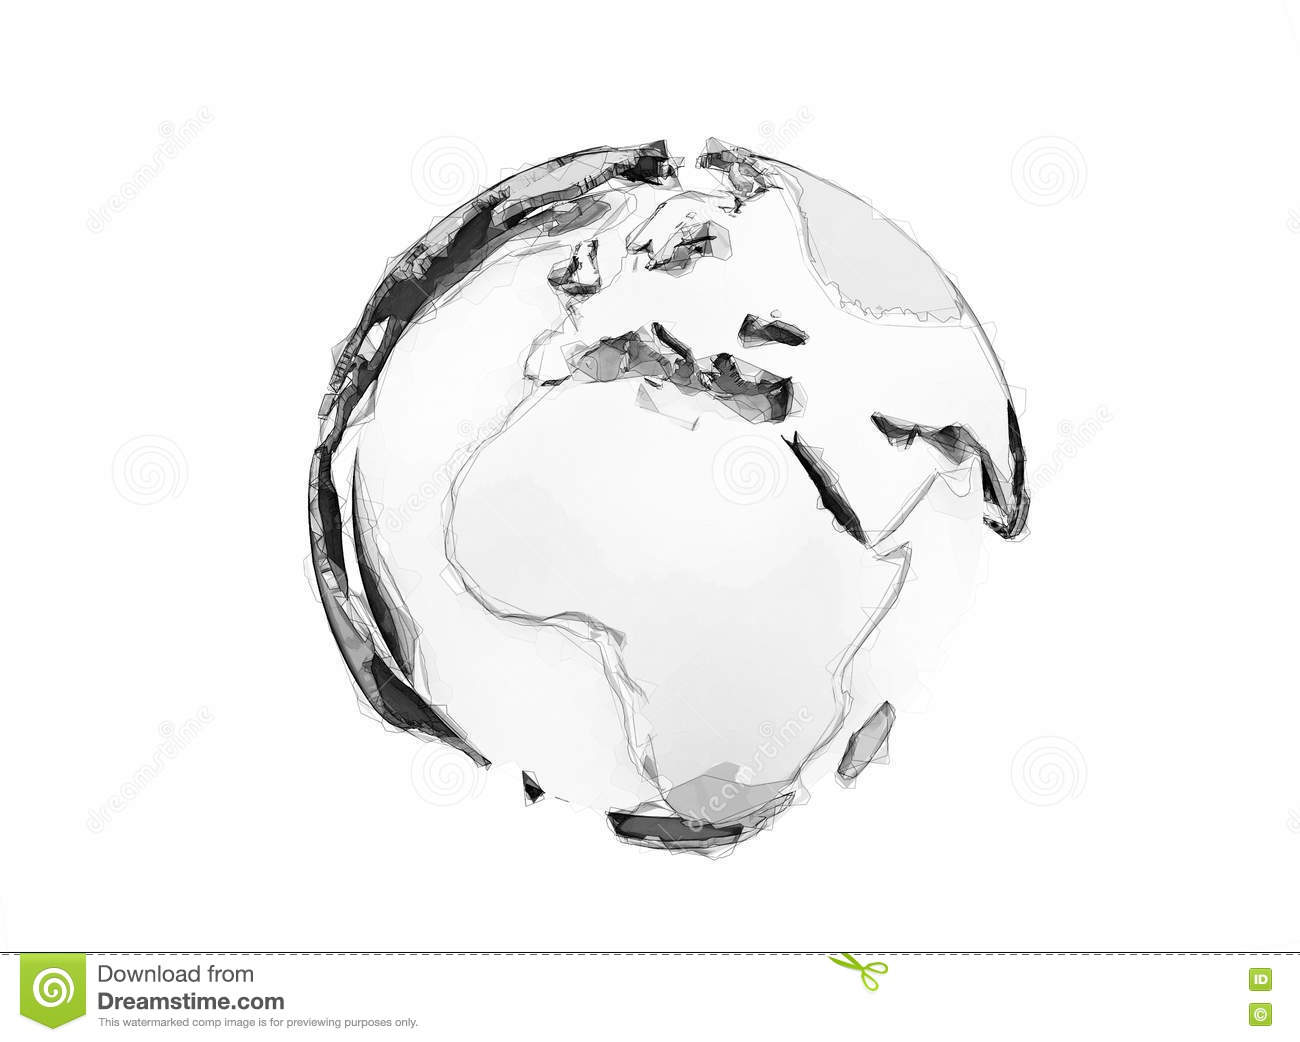 3d world globe digital pencil sketch stock illustration for 3d drawing online no download